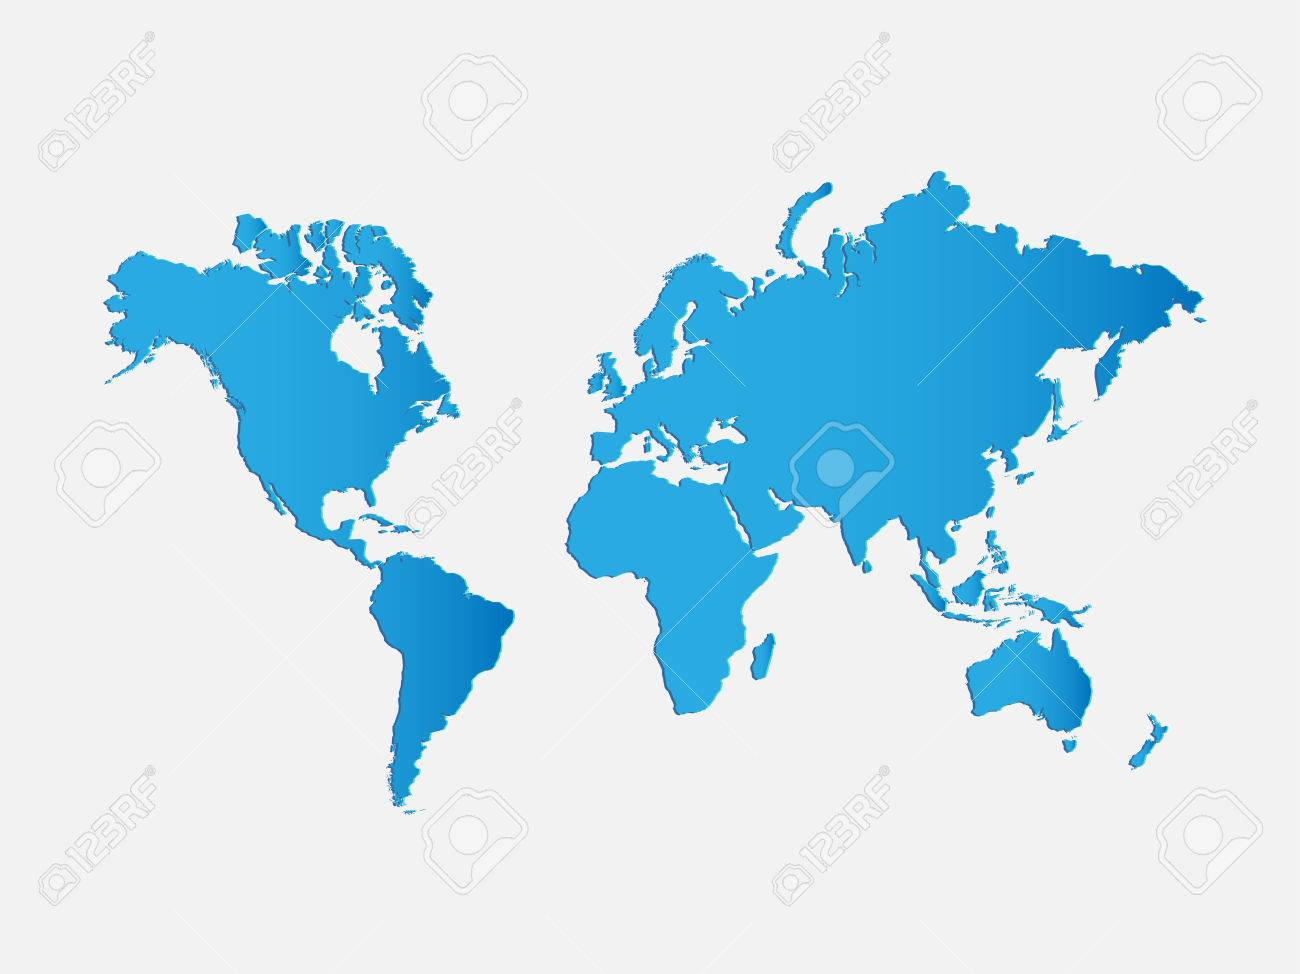 Illustration of a world map isolated on a white background. - 39520768